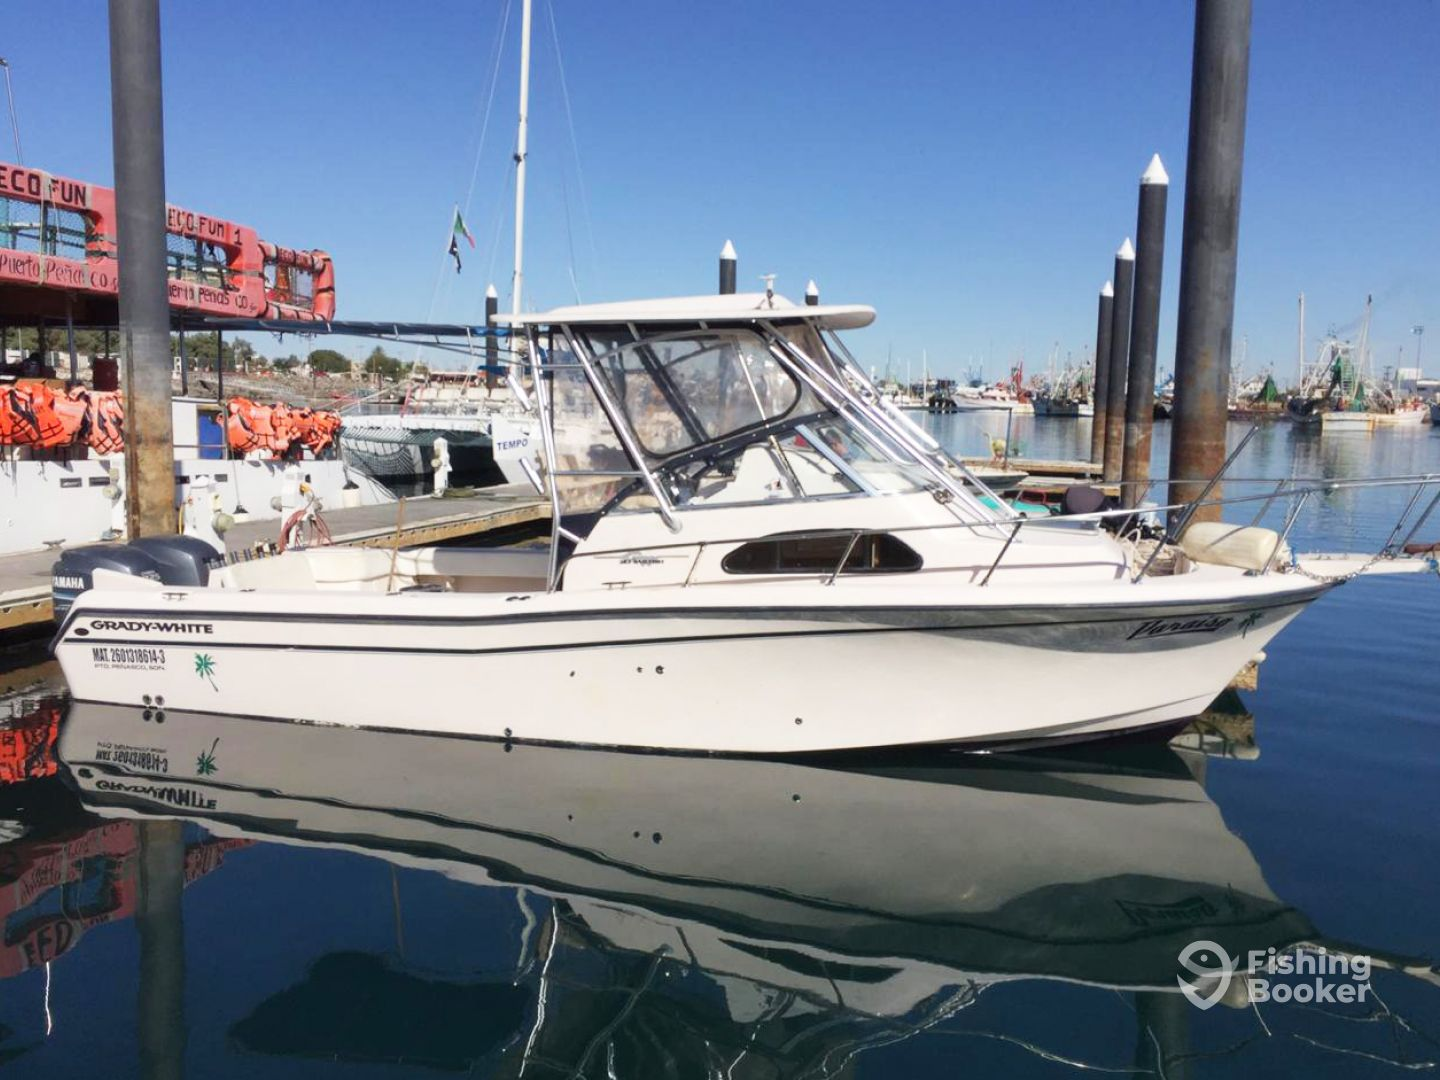 I just found Del Mar Charters – 30' Grady-White on FishingBooker